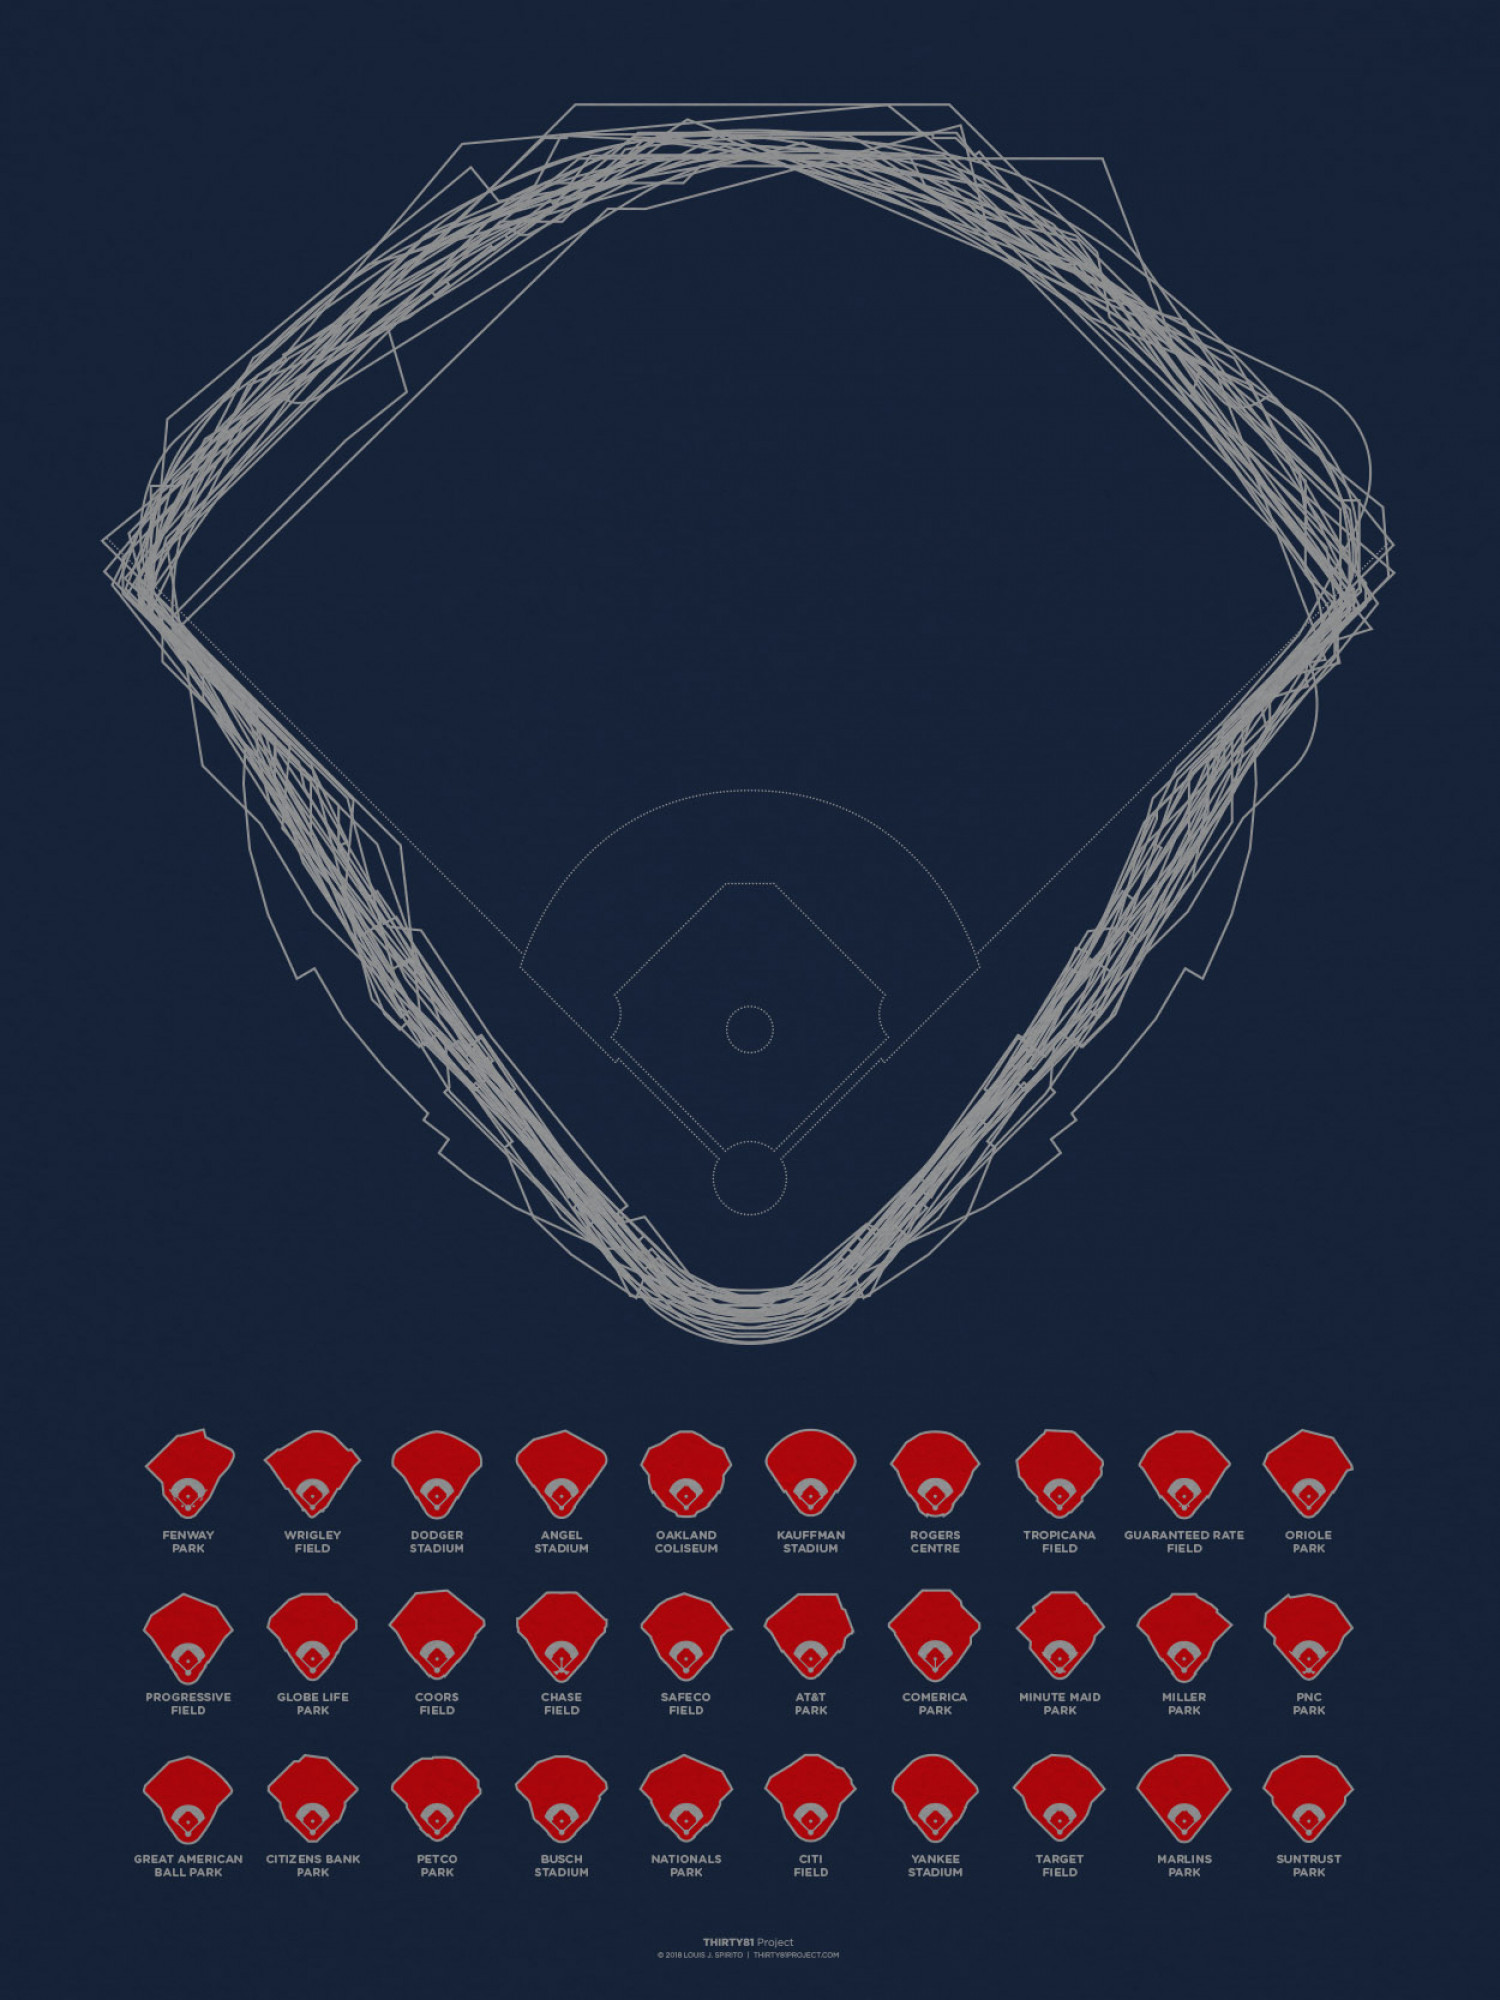 The Dimensions of Baseball Infographic